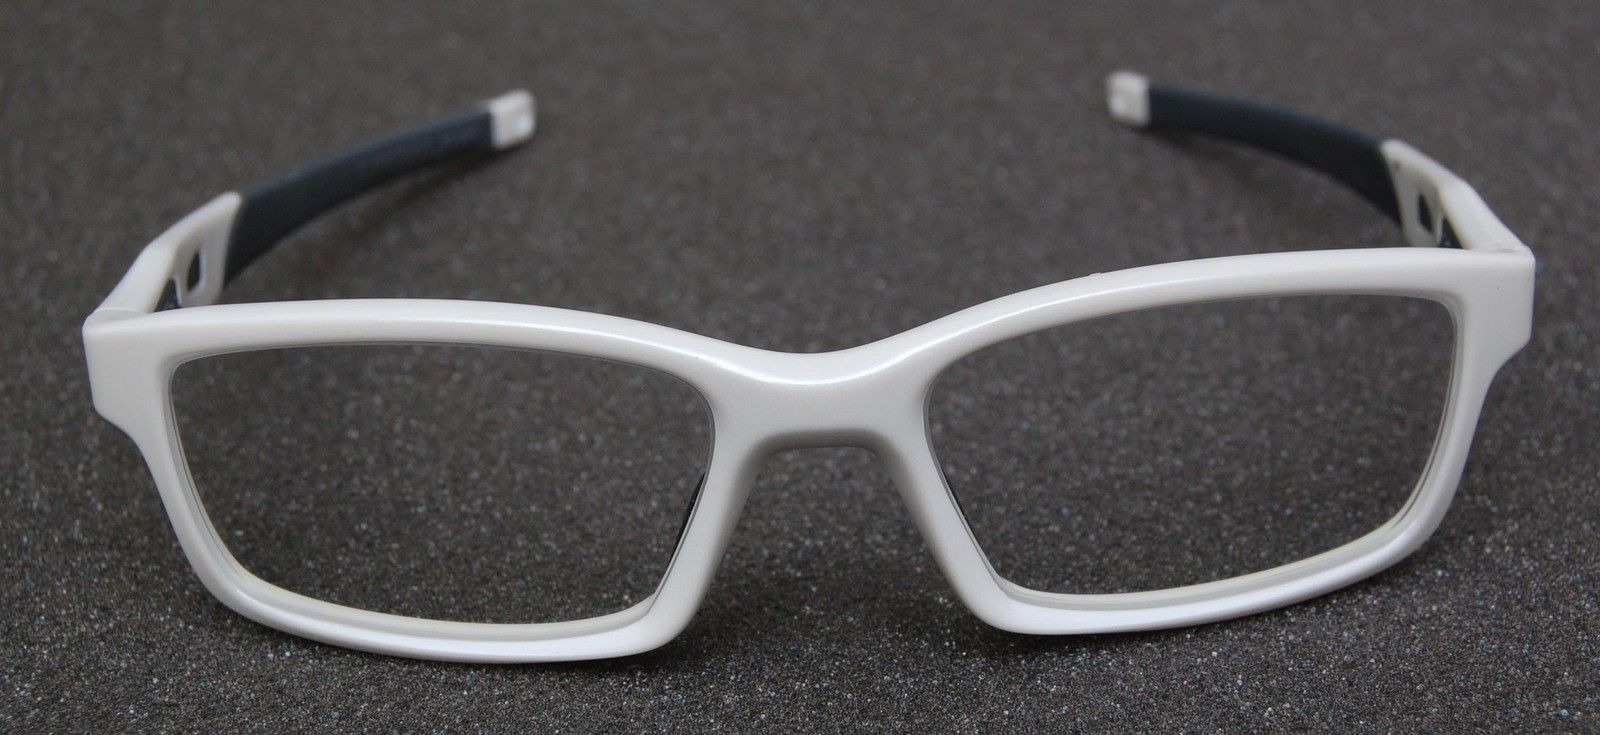 Oakley Crosslink OX8027-0453 Pearl White / Grey Rx Prescription - 03.jpg